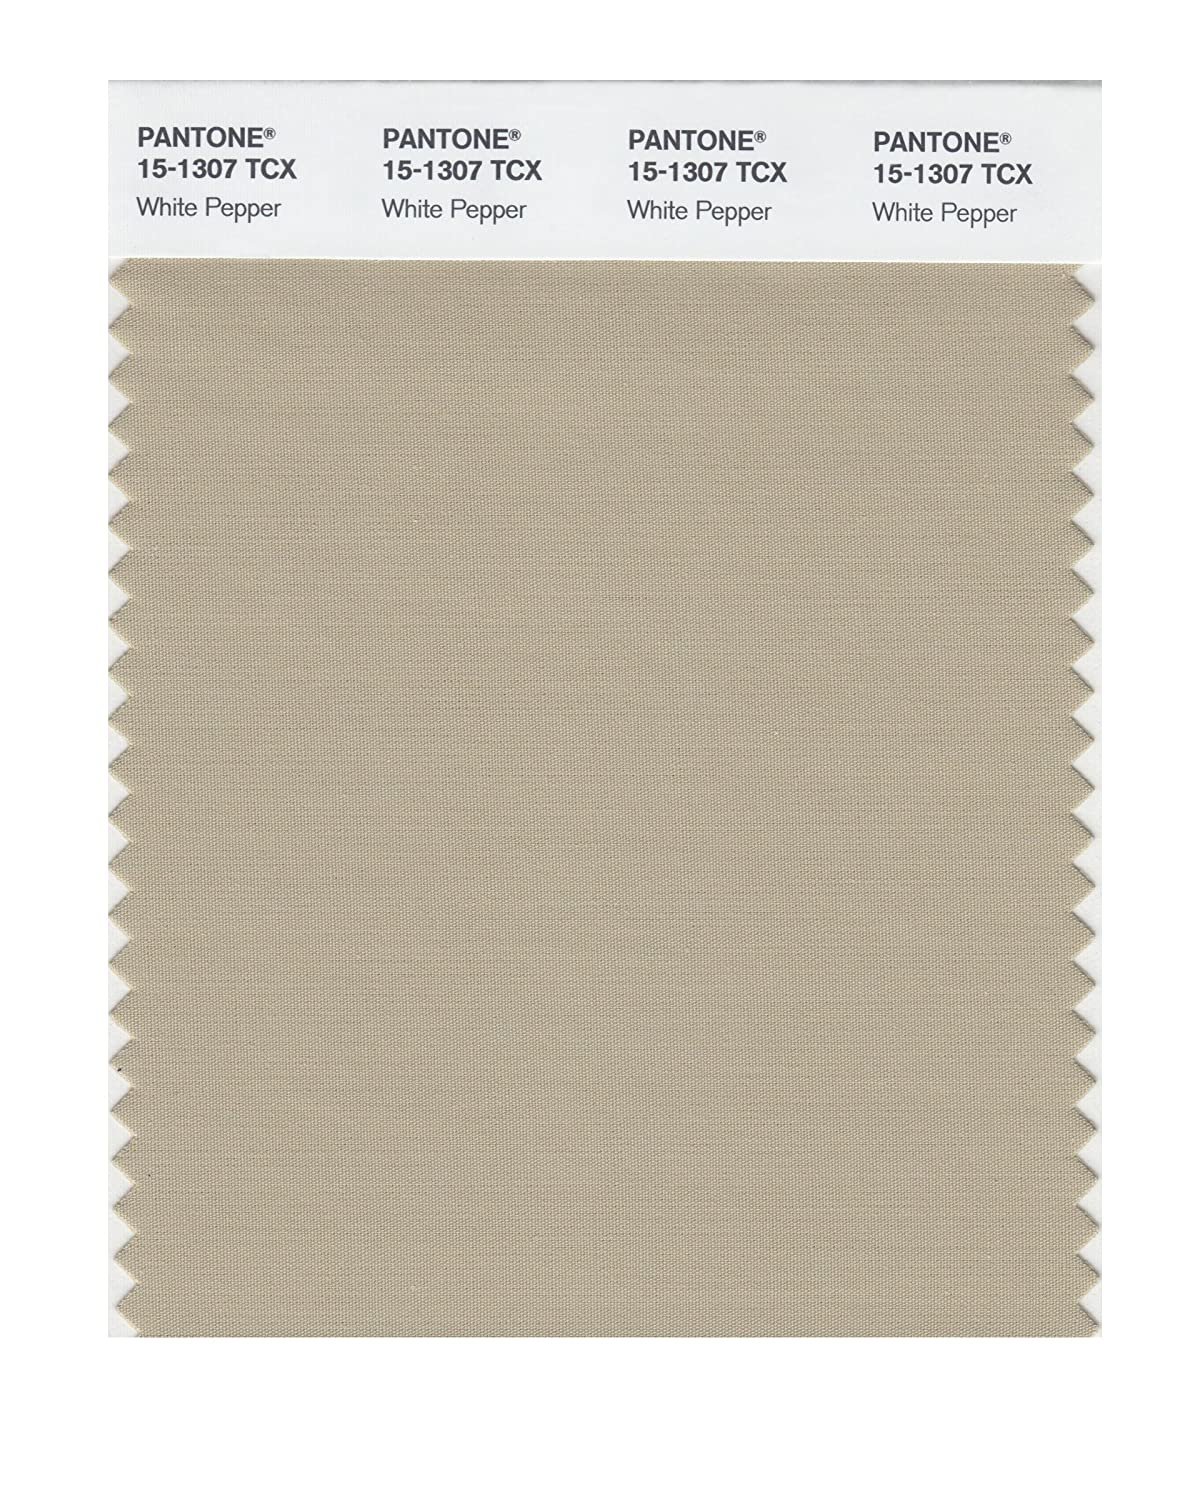 Pantone 15-1307 TCX Smart Color Swatch Card, White Pepper - House Paint -  Amazon.com